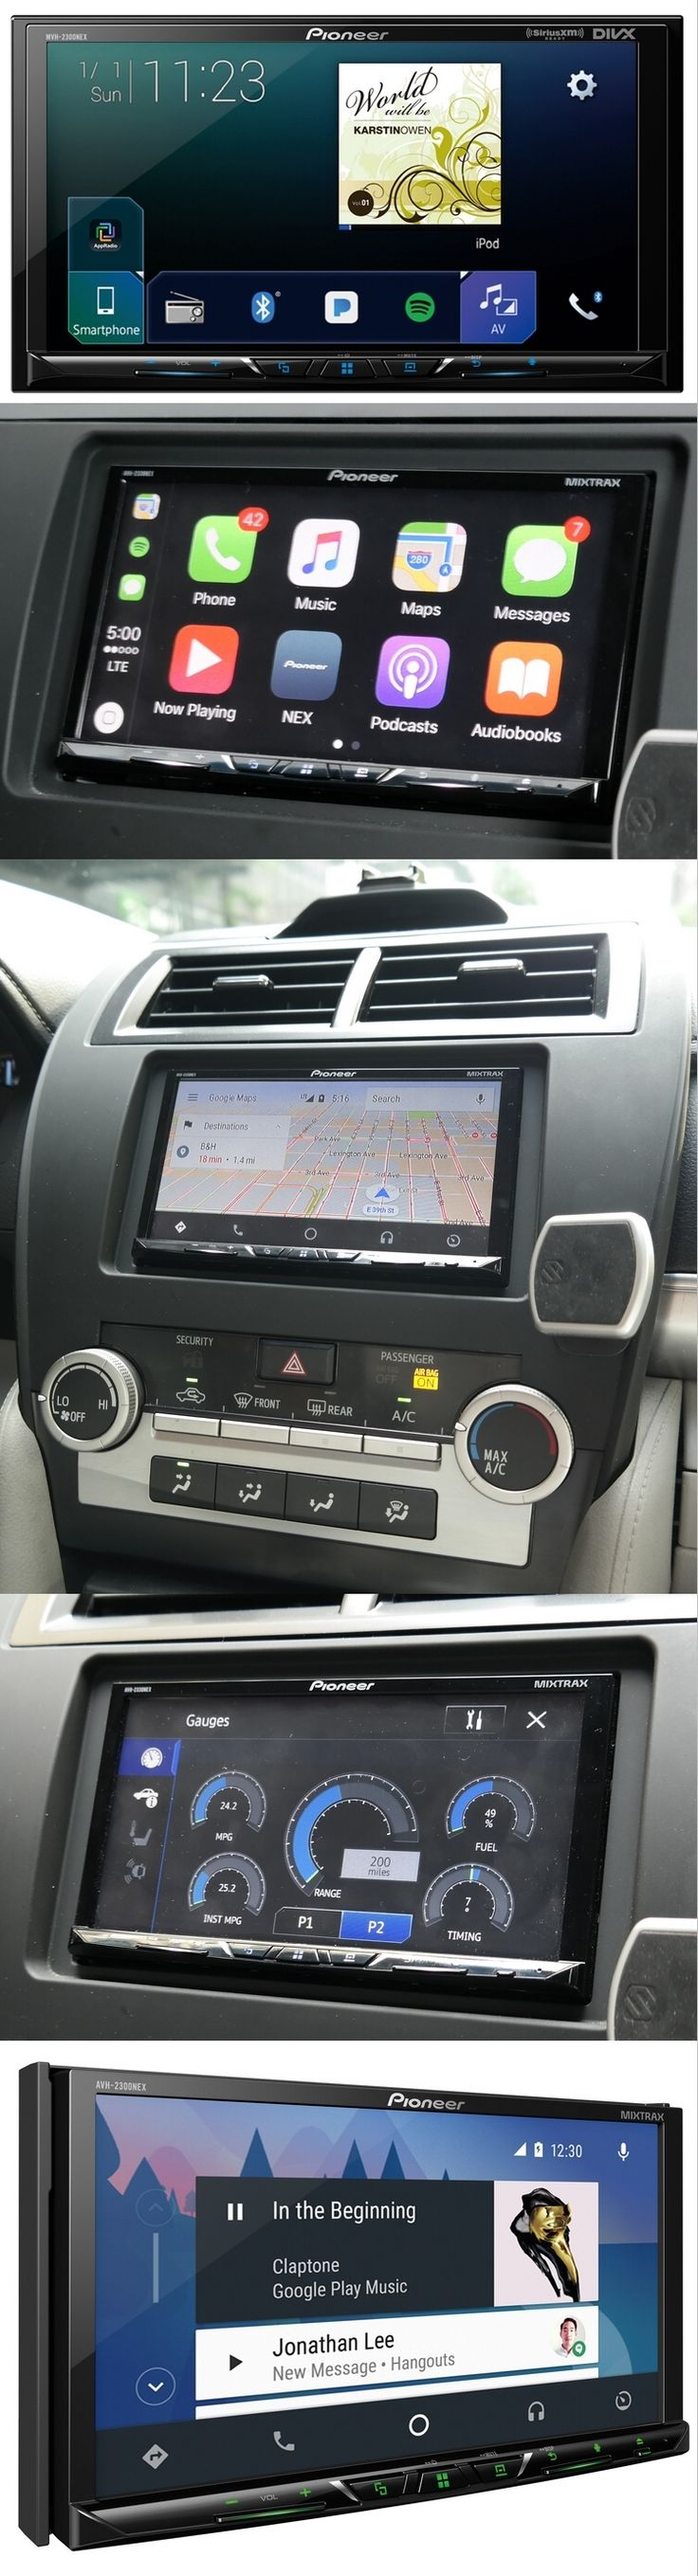 Pioneer Electronics added the new MVH-2300NEX to its in-dash car digital media receiver lineup by performing a little subtraction. The $400 unit has the same 7-inch color display and music-streaming and car-monitoring features of the AVH-2300NEX, but is $100 cheaper since there's no DVD player. The Apple CarPlay / Android Auto-compatible MVH-2300NEX supports navigation apps, back-up cameras, music streaming services like Pandora and Spotify and add-ons like the SiriusXM Vehicle Connect…